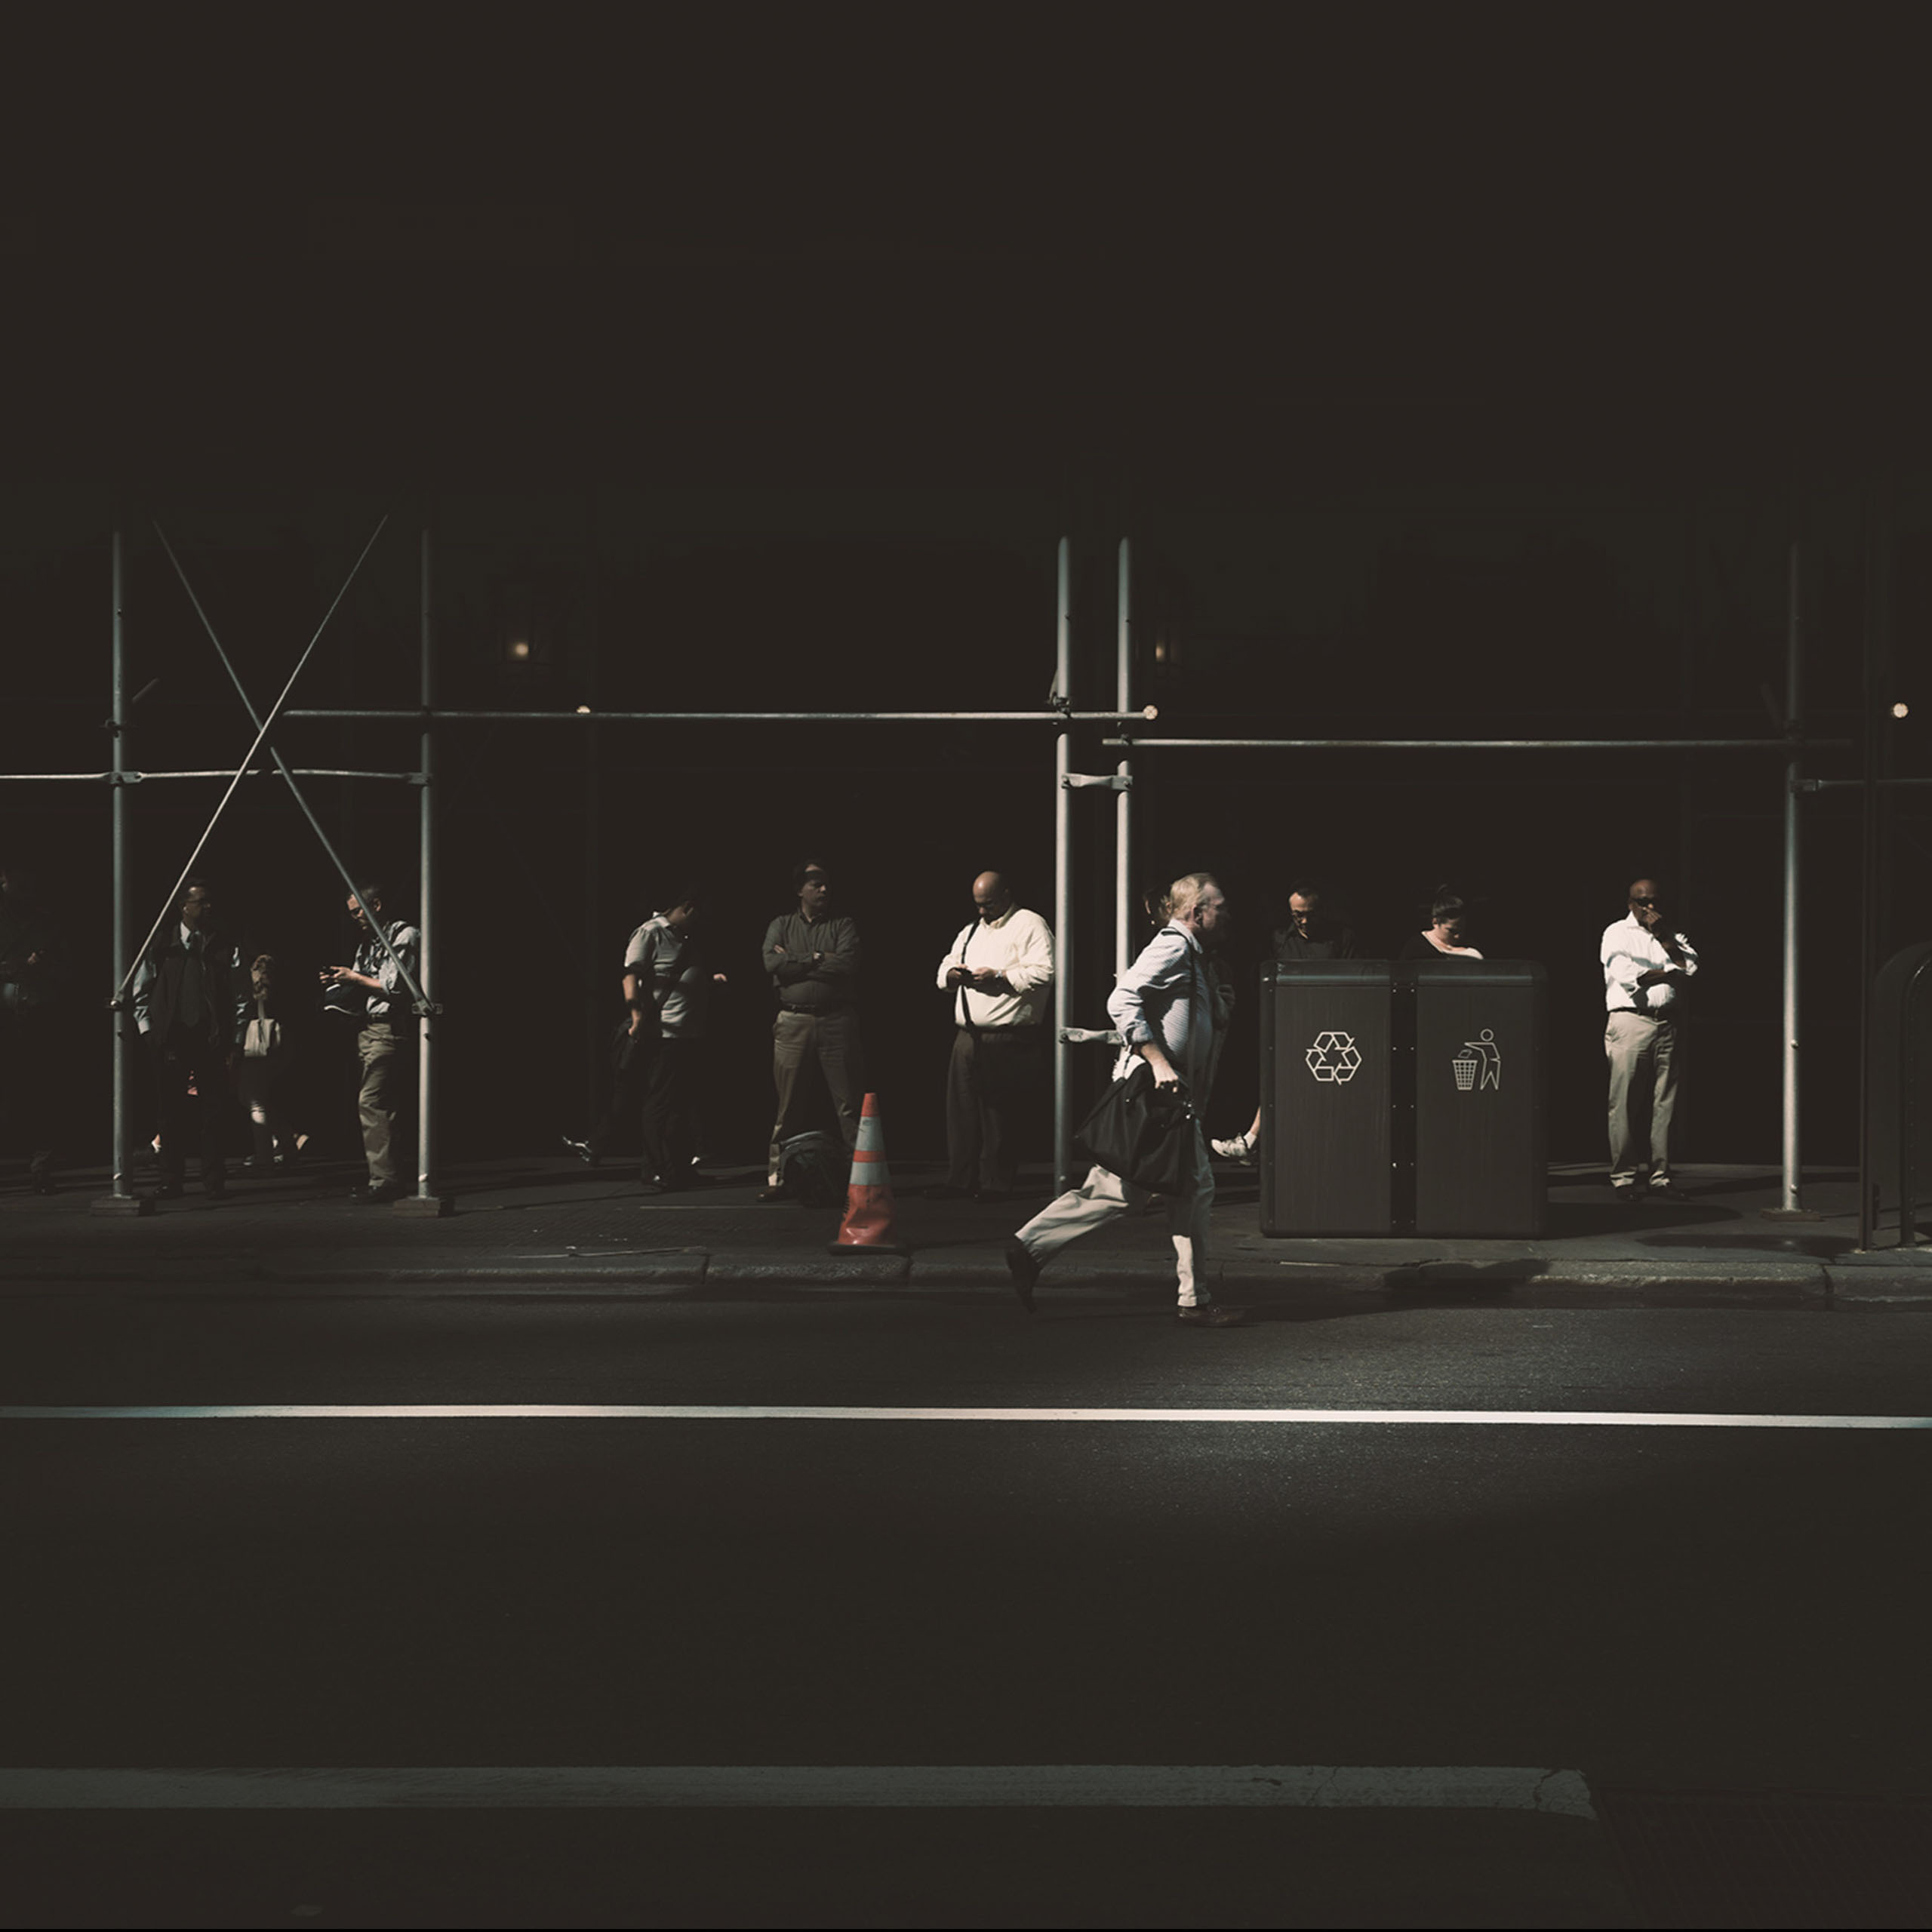 Ali Rajabi | The X System on the Streets of New York